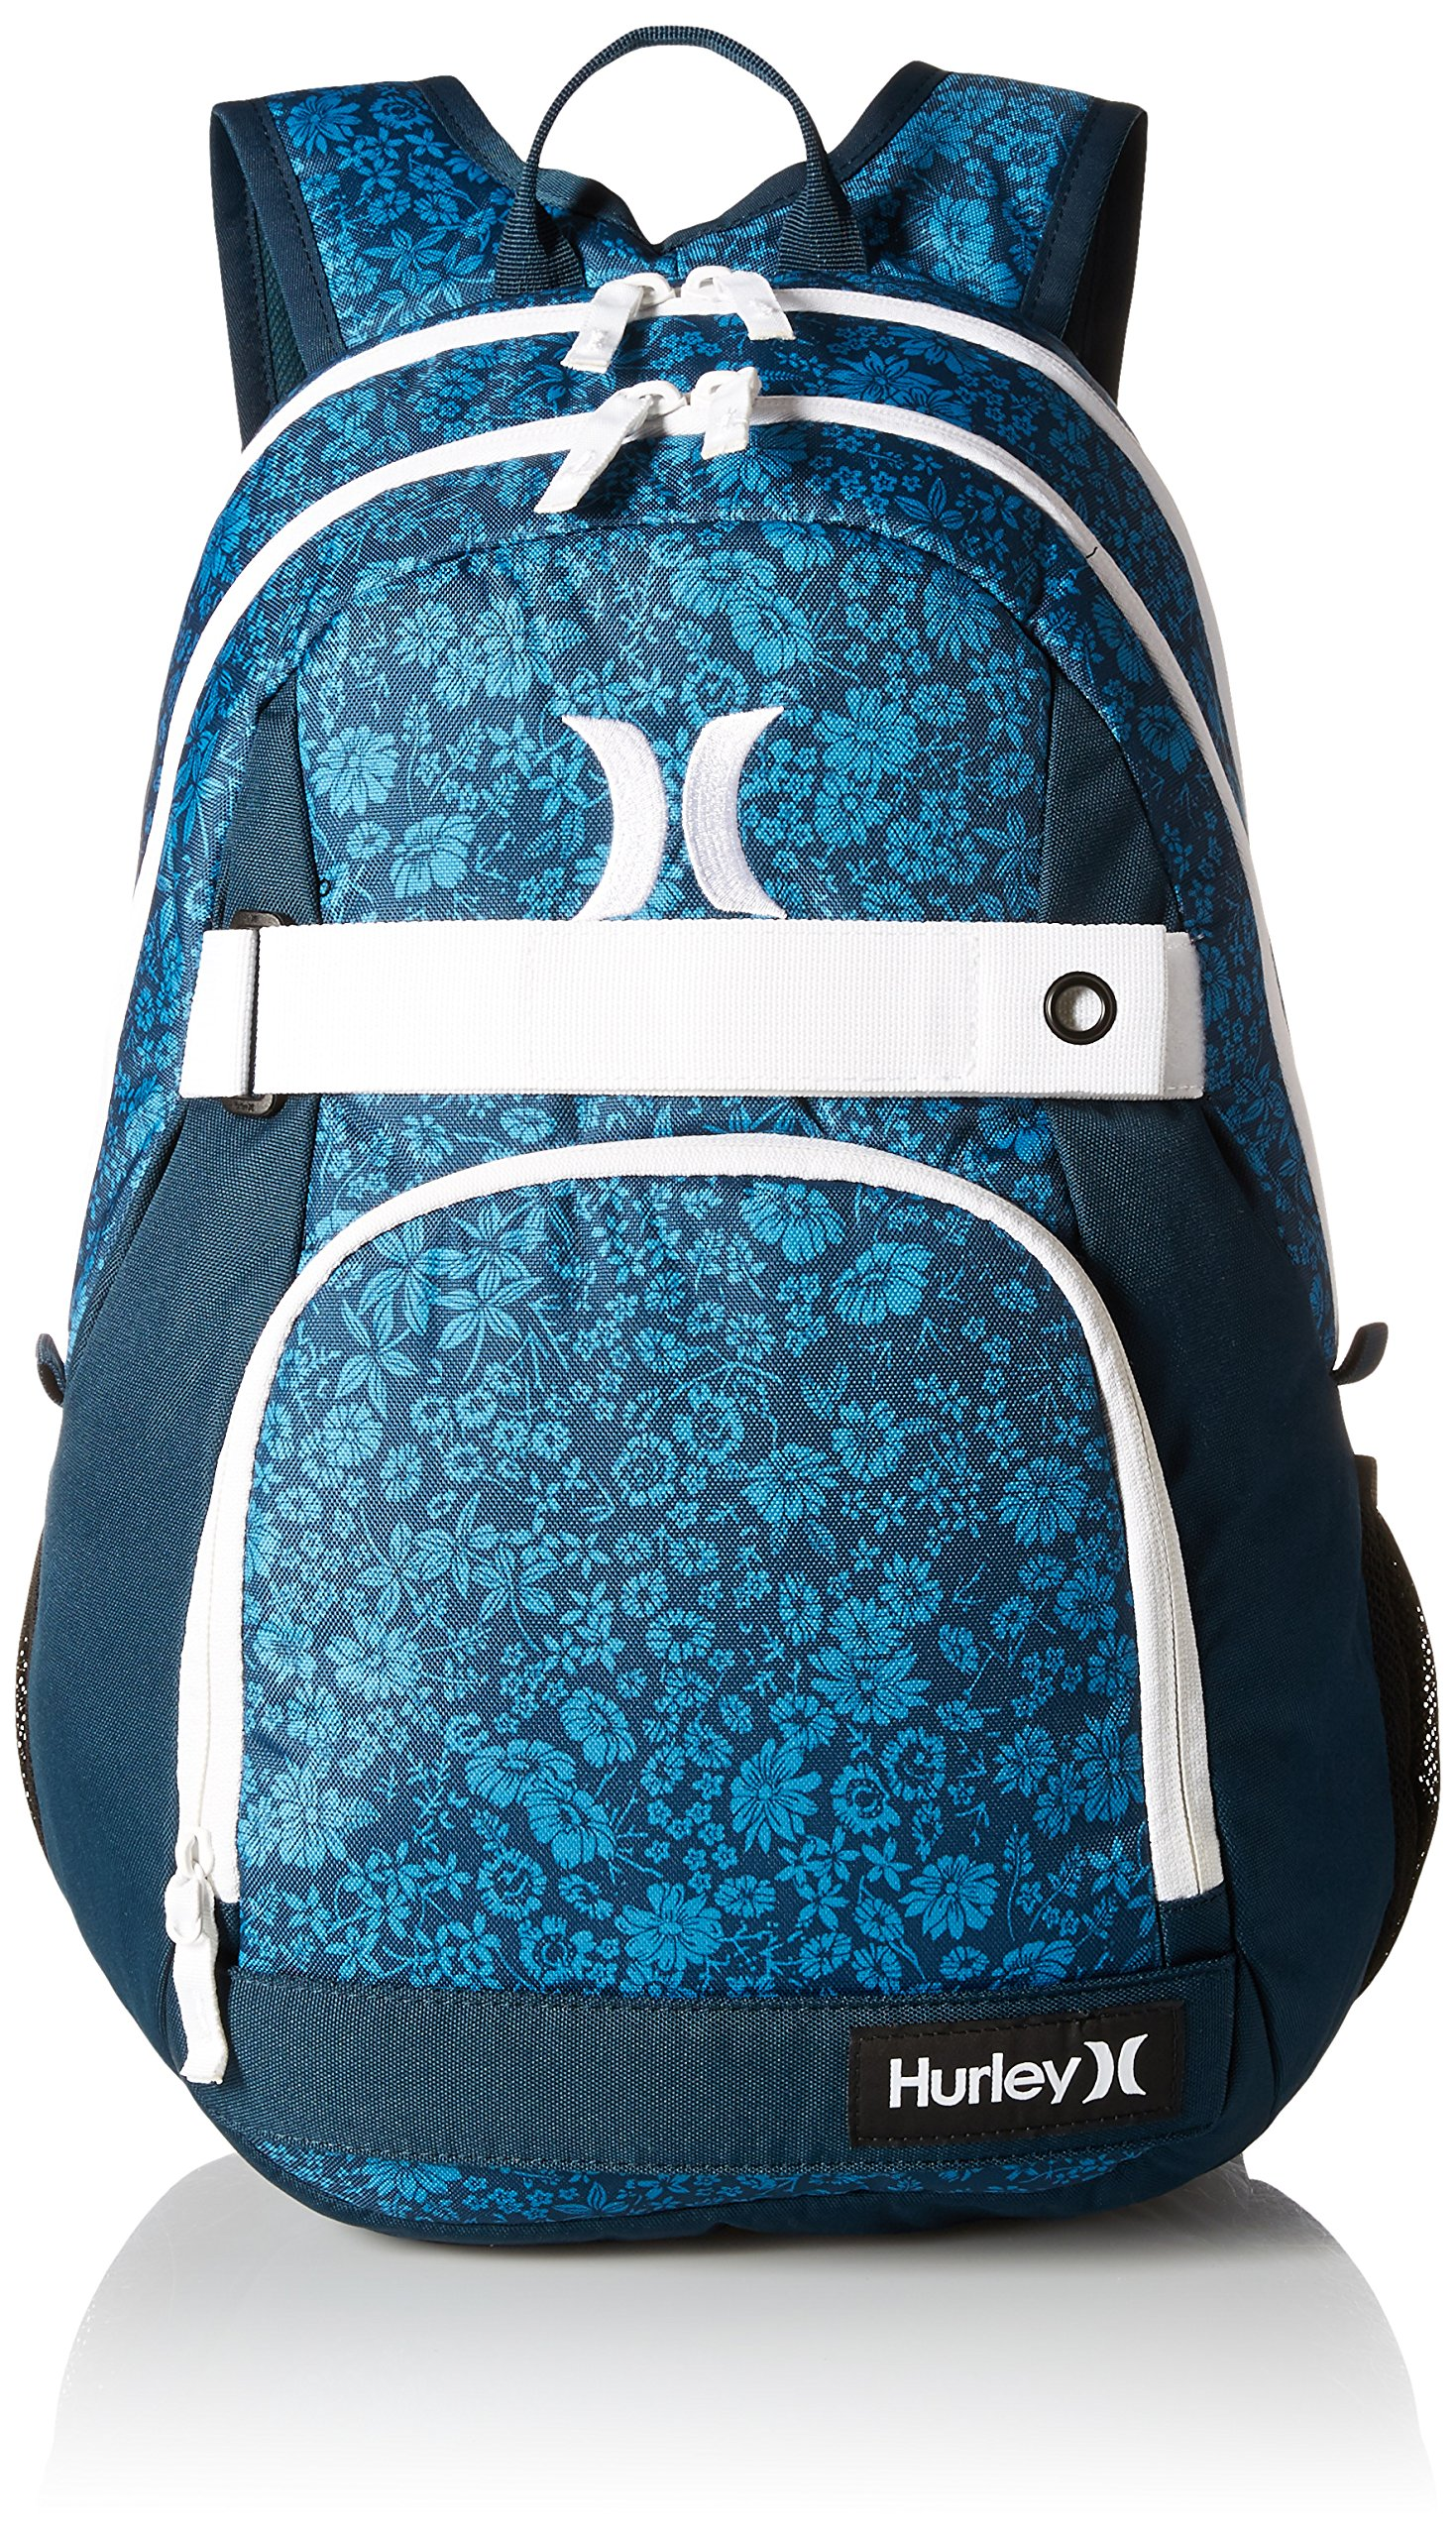 Hurley Men's Honor Roll Printed Backpack, Photo Blue/Midnight Teal/White, One Size